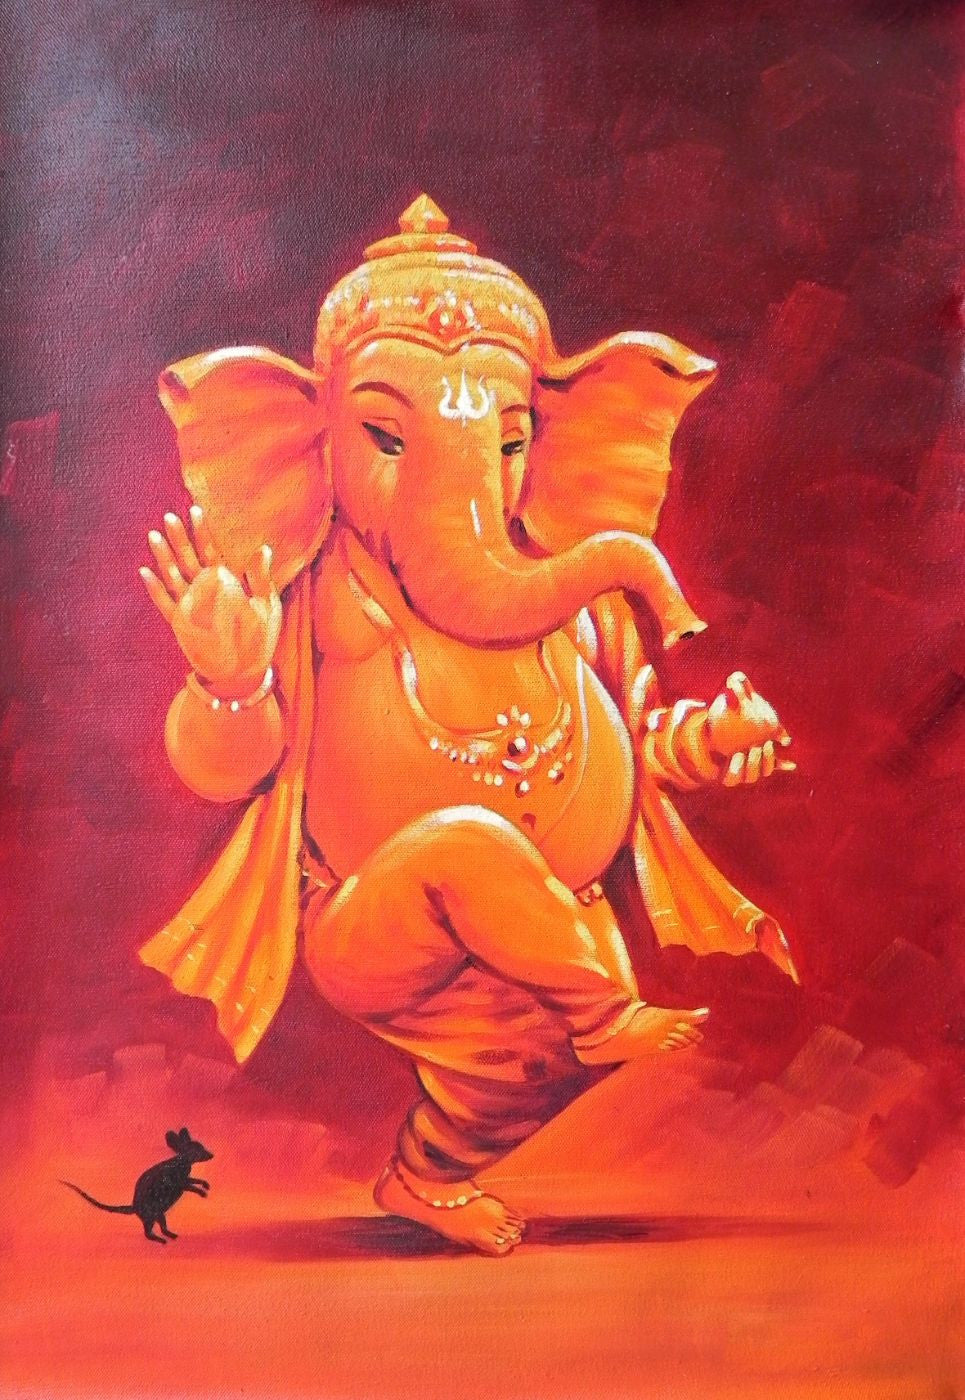 Ganesha Paintings | Buy Posters, Frames, Canvas, Digital Art & Large Size Prints